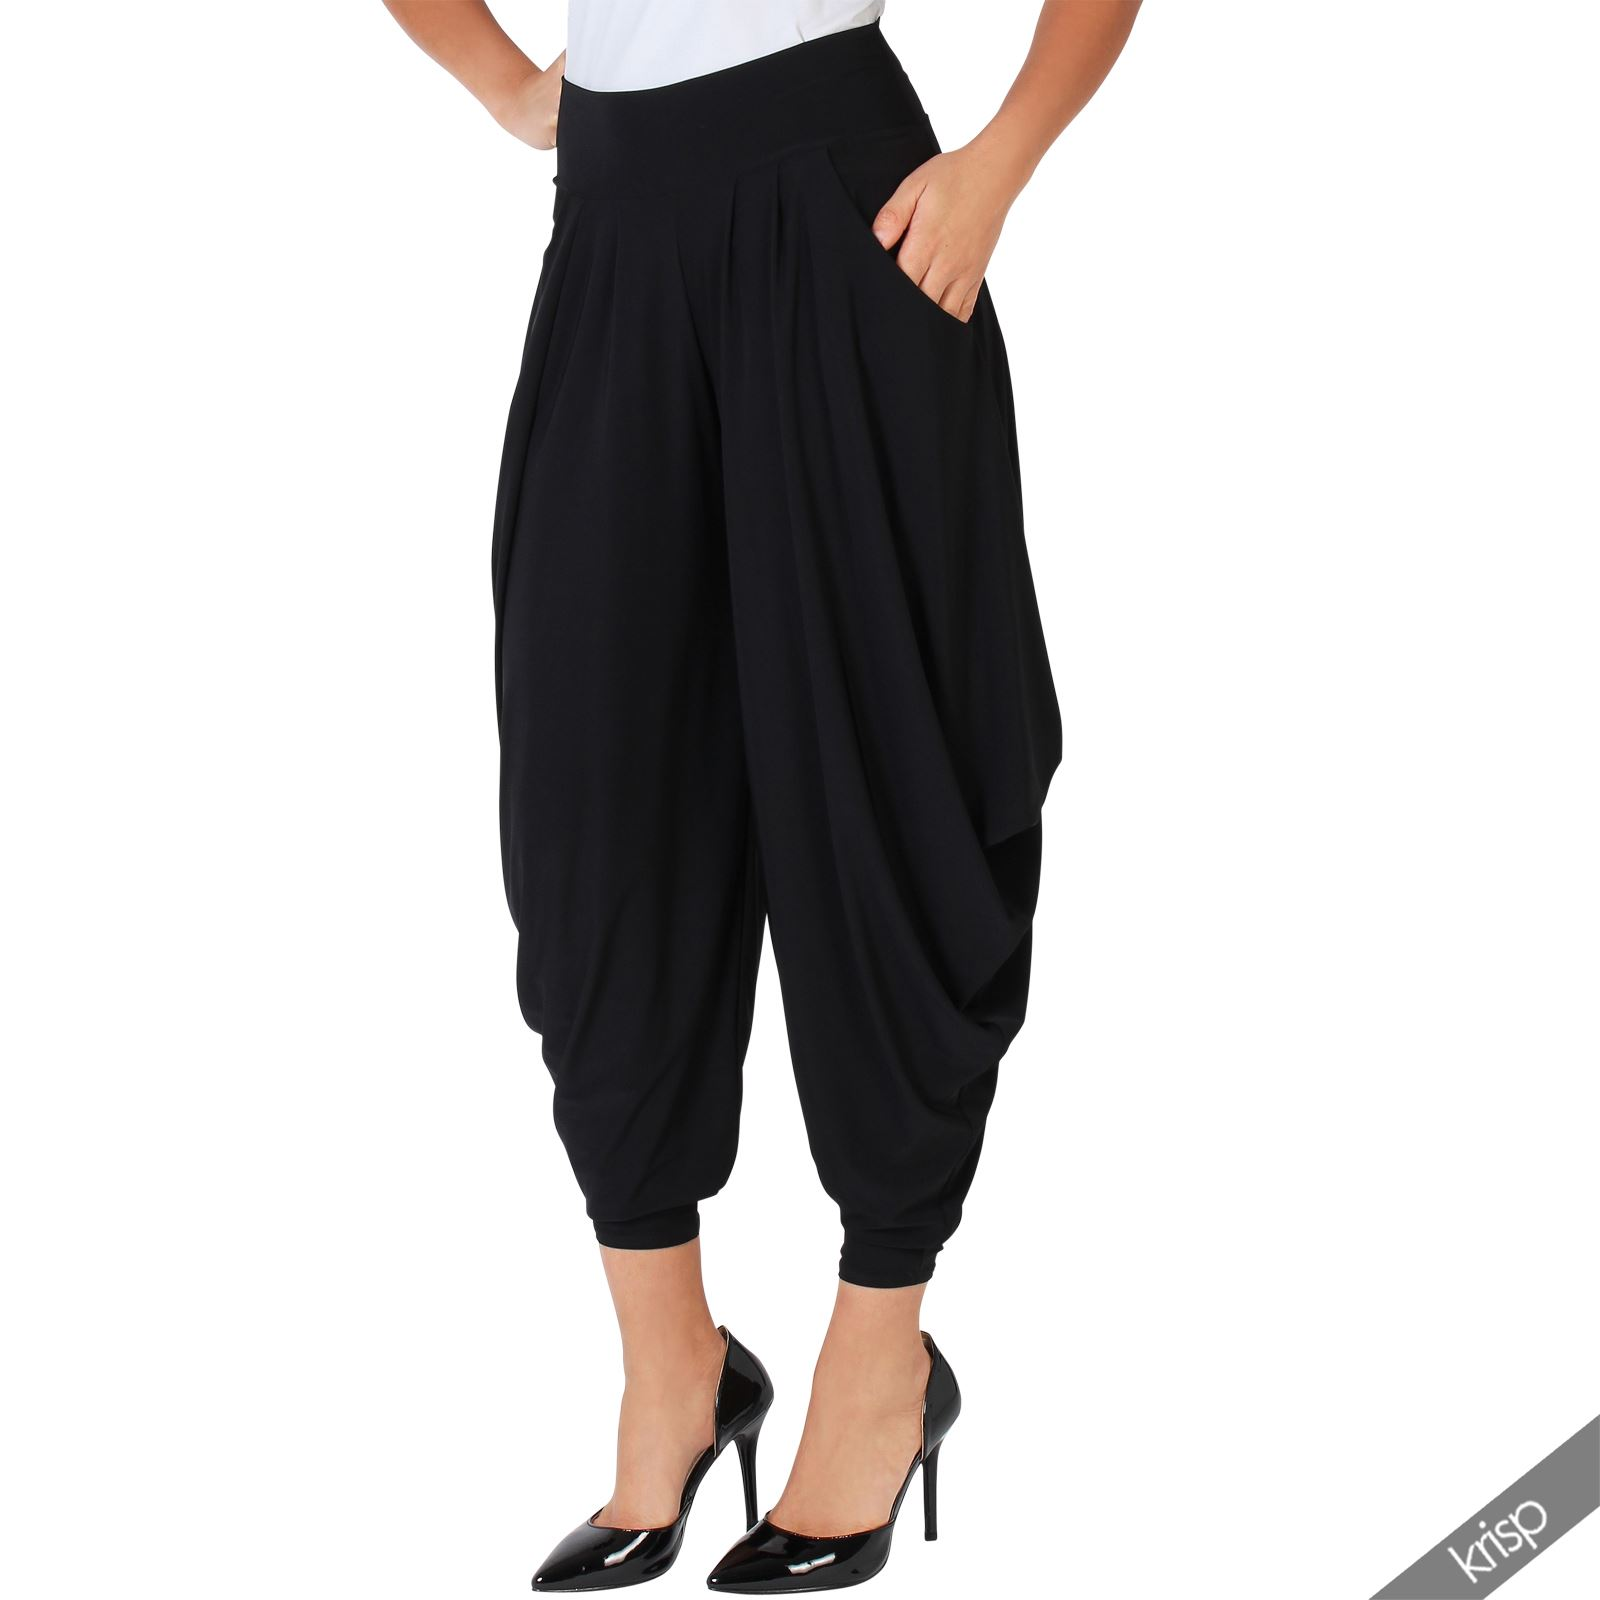 Elegant Black Harem Pants Women Stretch High Waisted Flared Trousers With Pockets USA